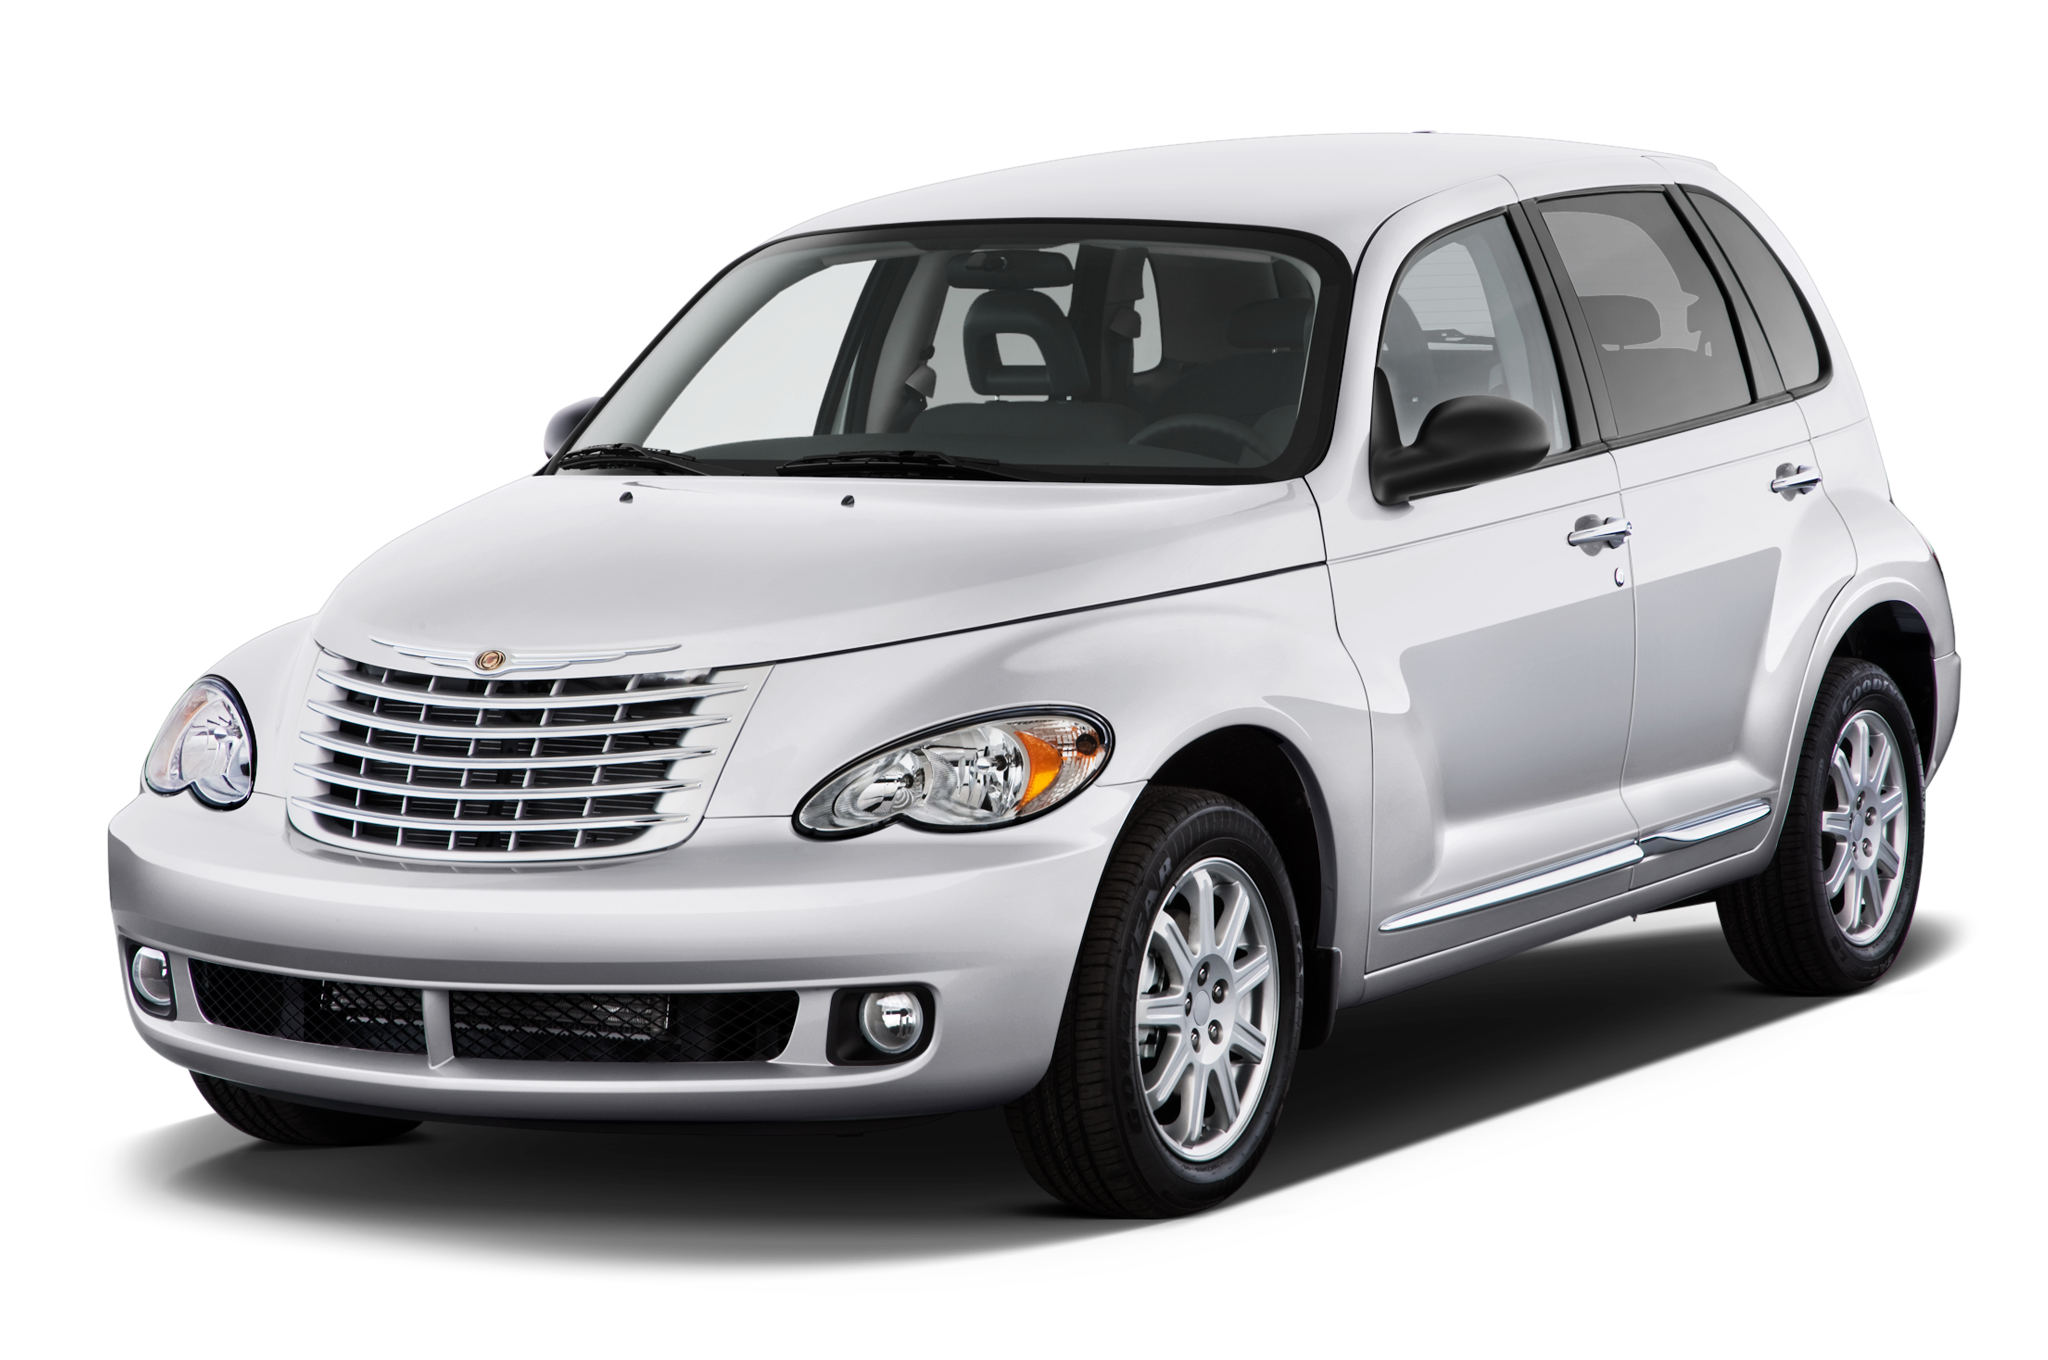 Chrysler PT Cruiser (00-10)